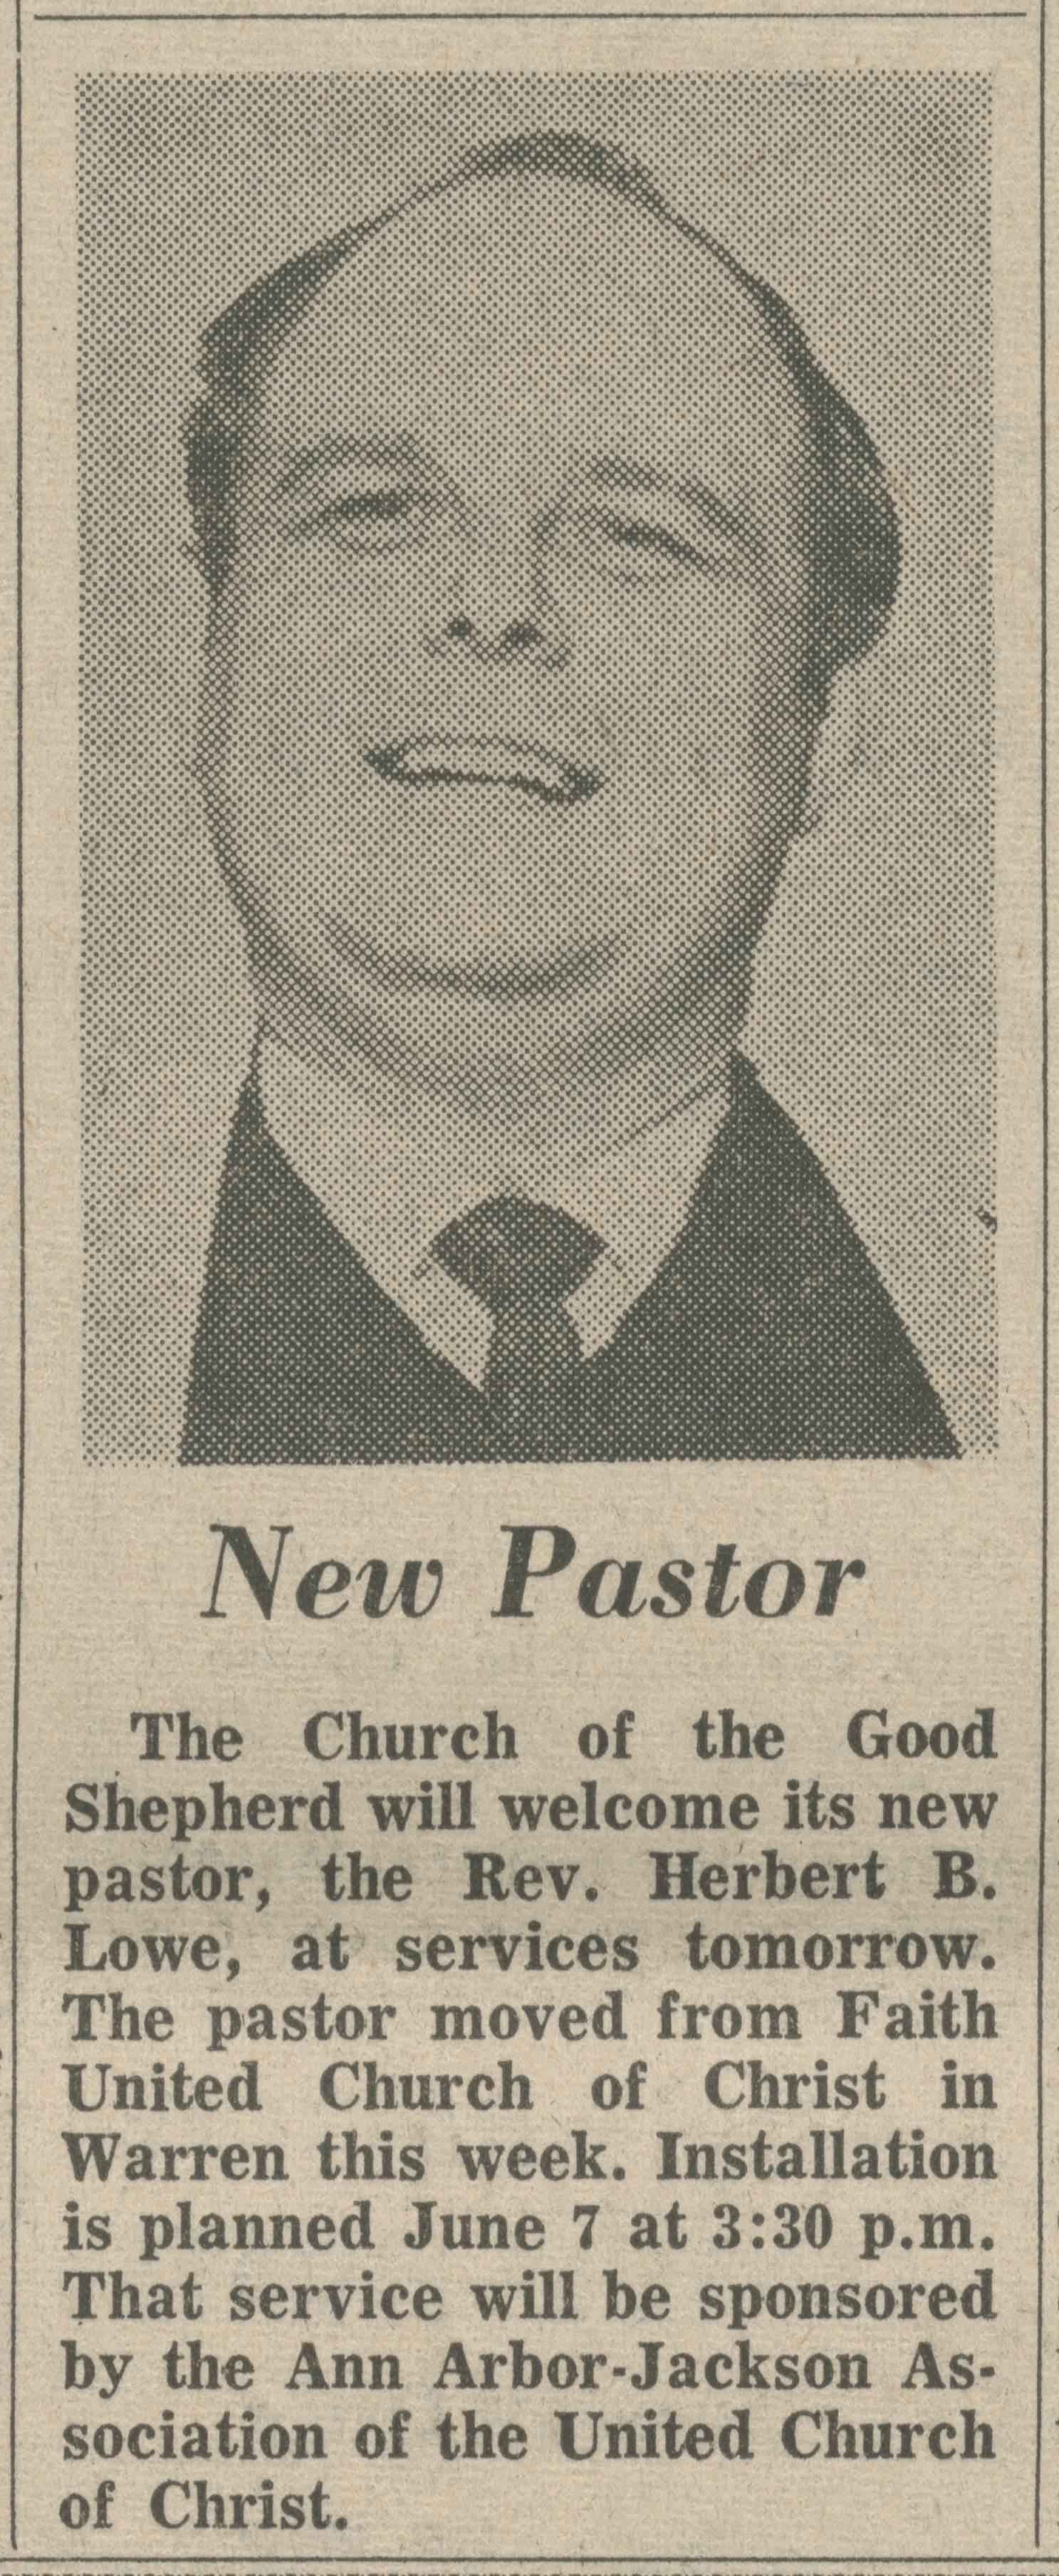 New Pastor image